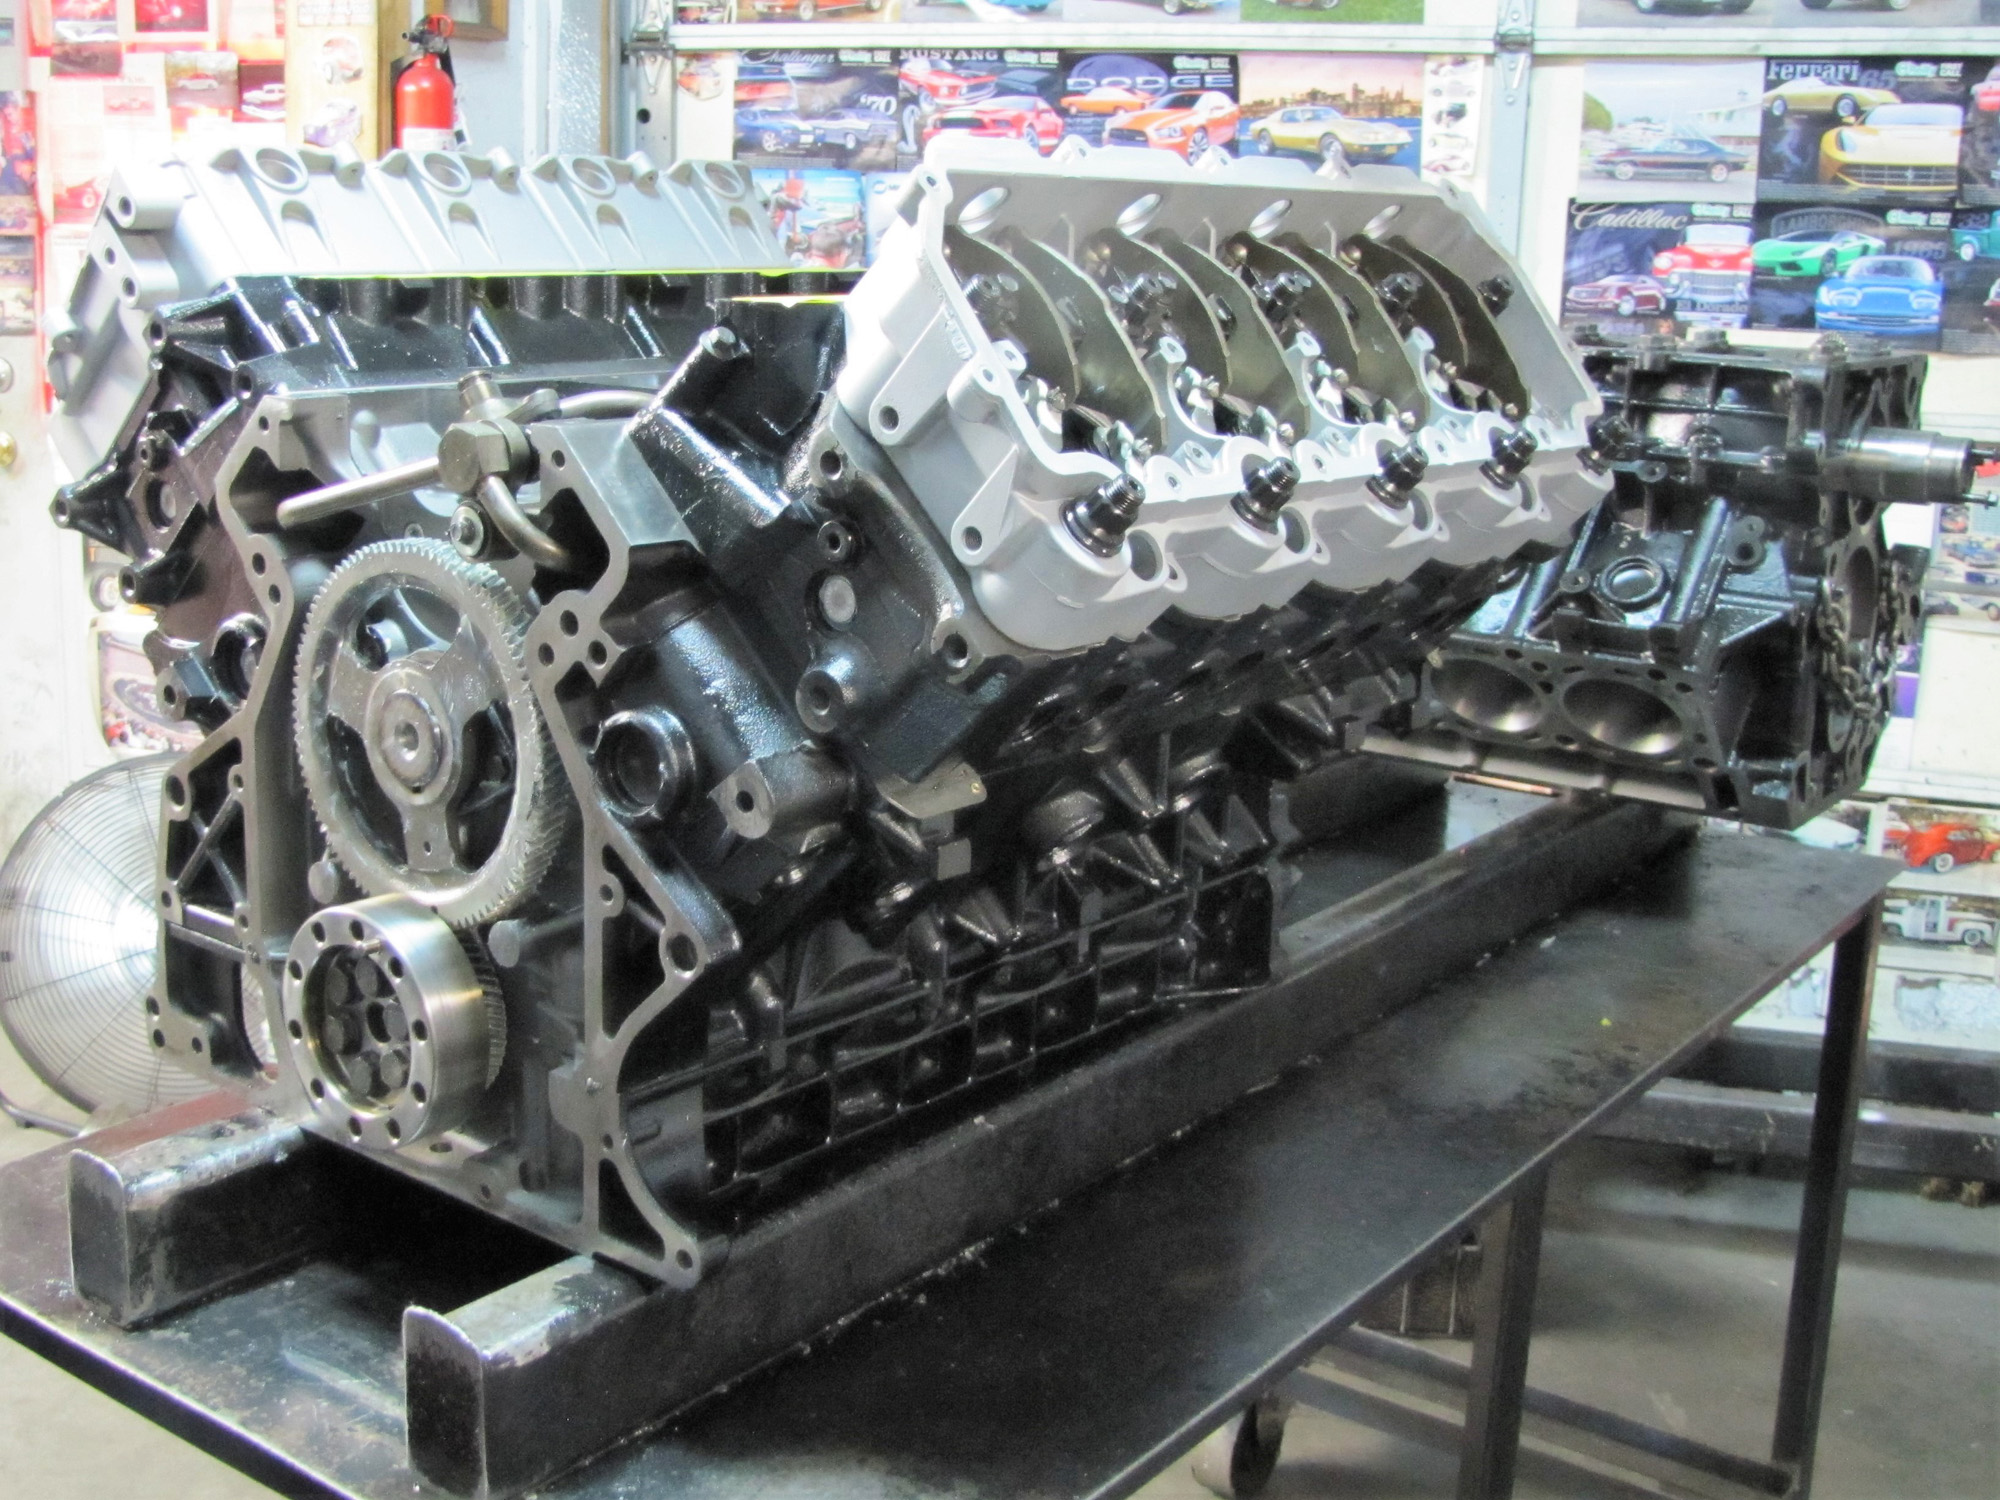 6 0 Powerstroke diesel engines